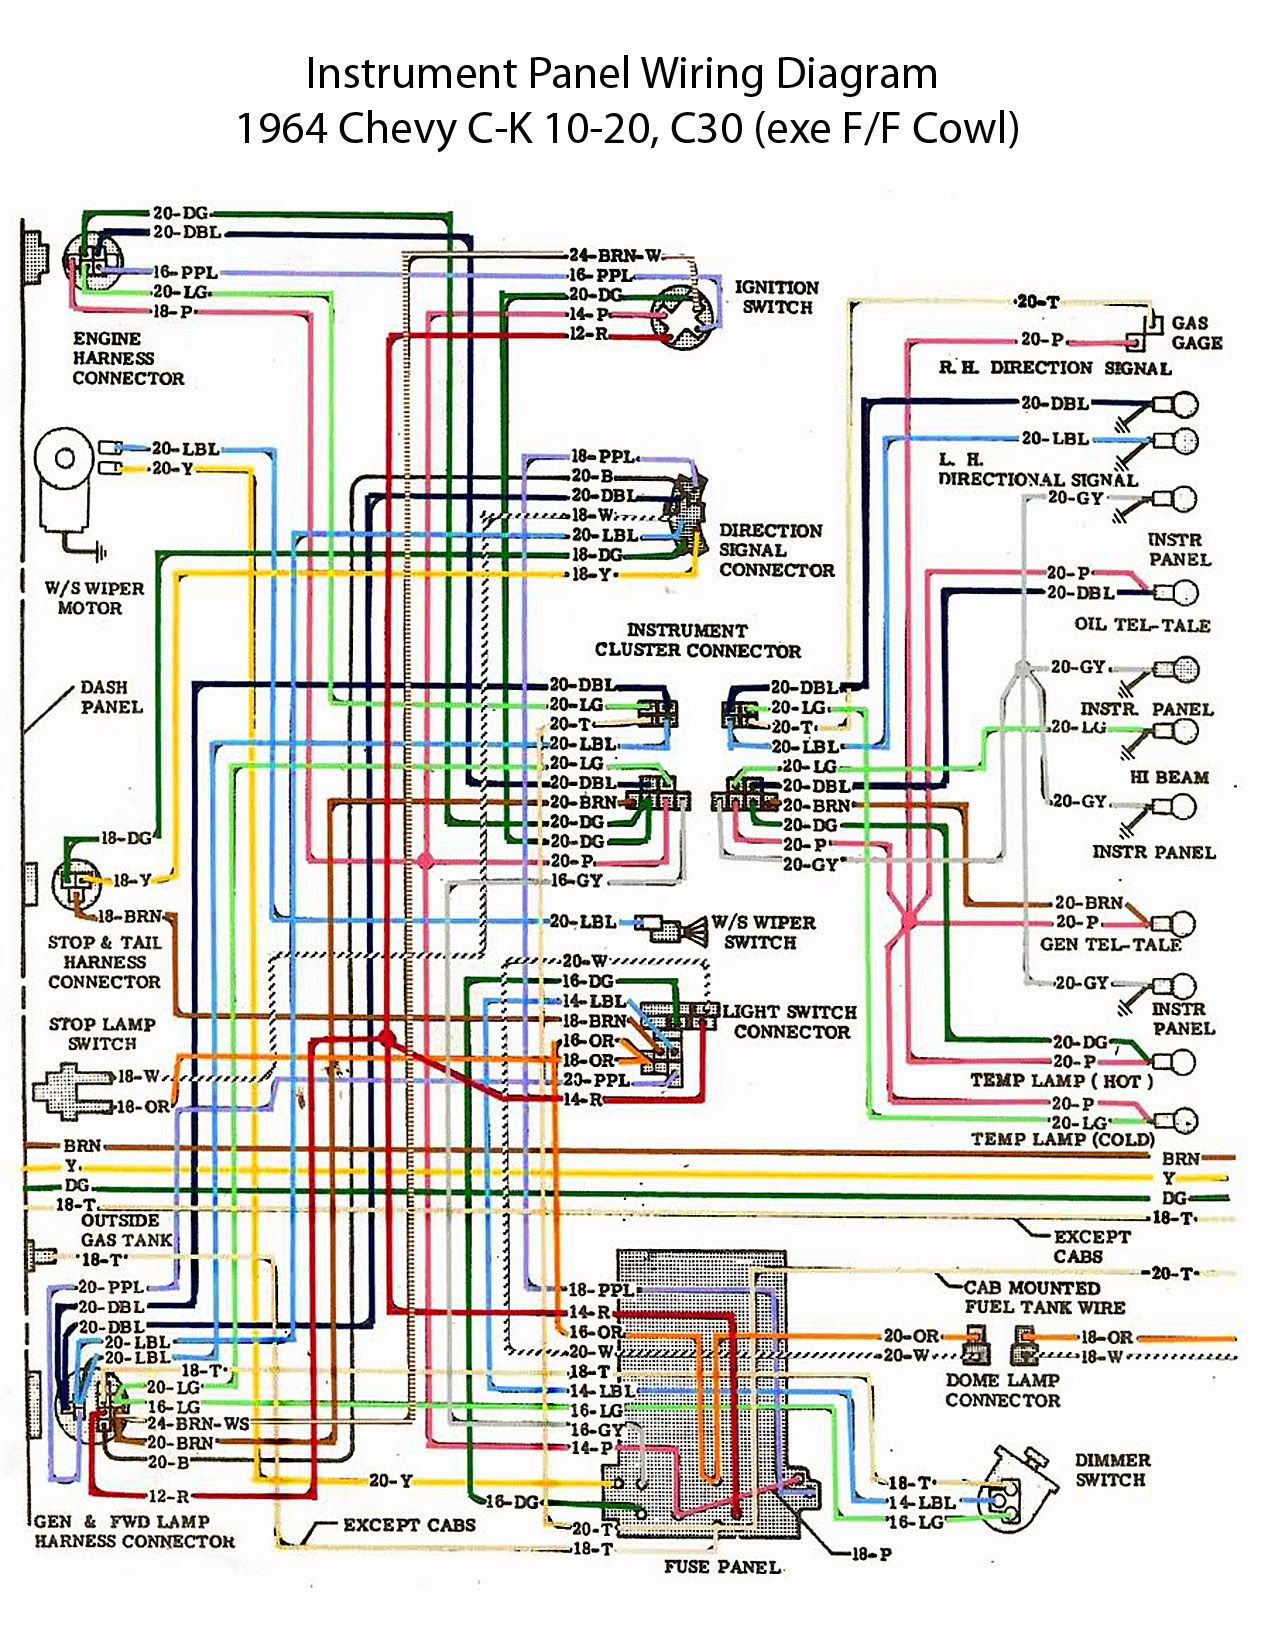 29f907bf017db832106977dbff5b5b31 64 chevy c10 wiring diagram chevy truck wiring diagram 64 chevy truck wiring diagram at et-consult.org